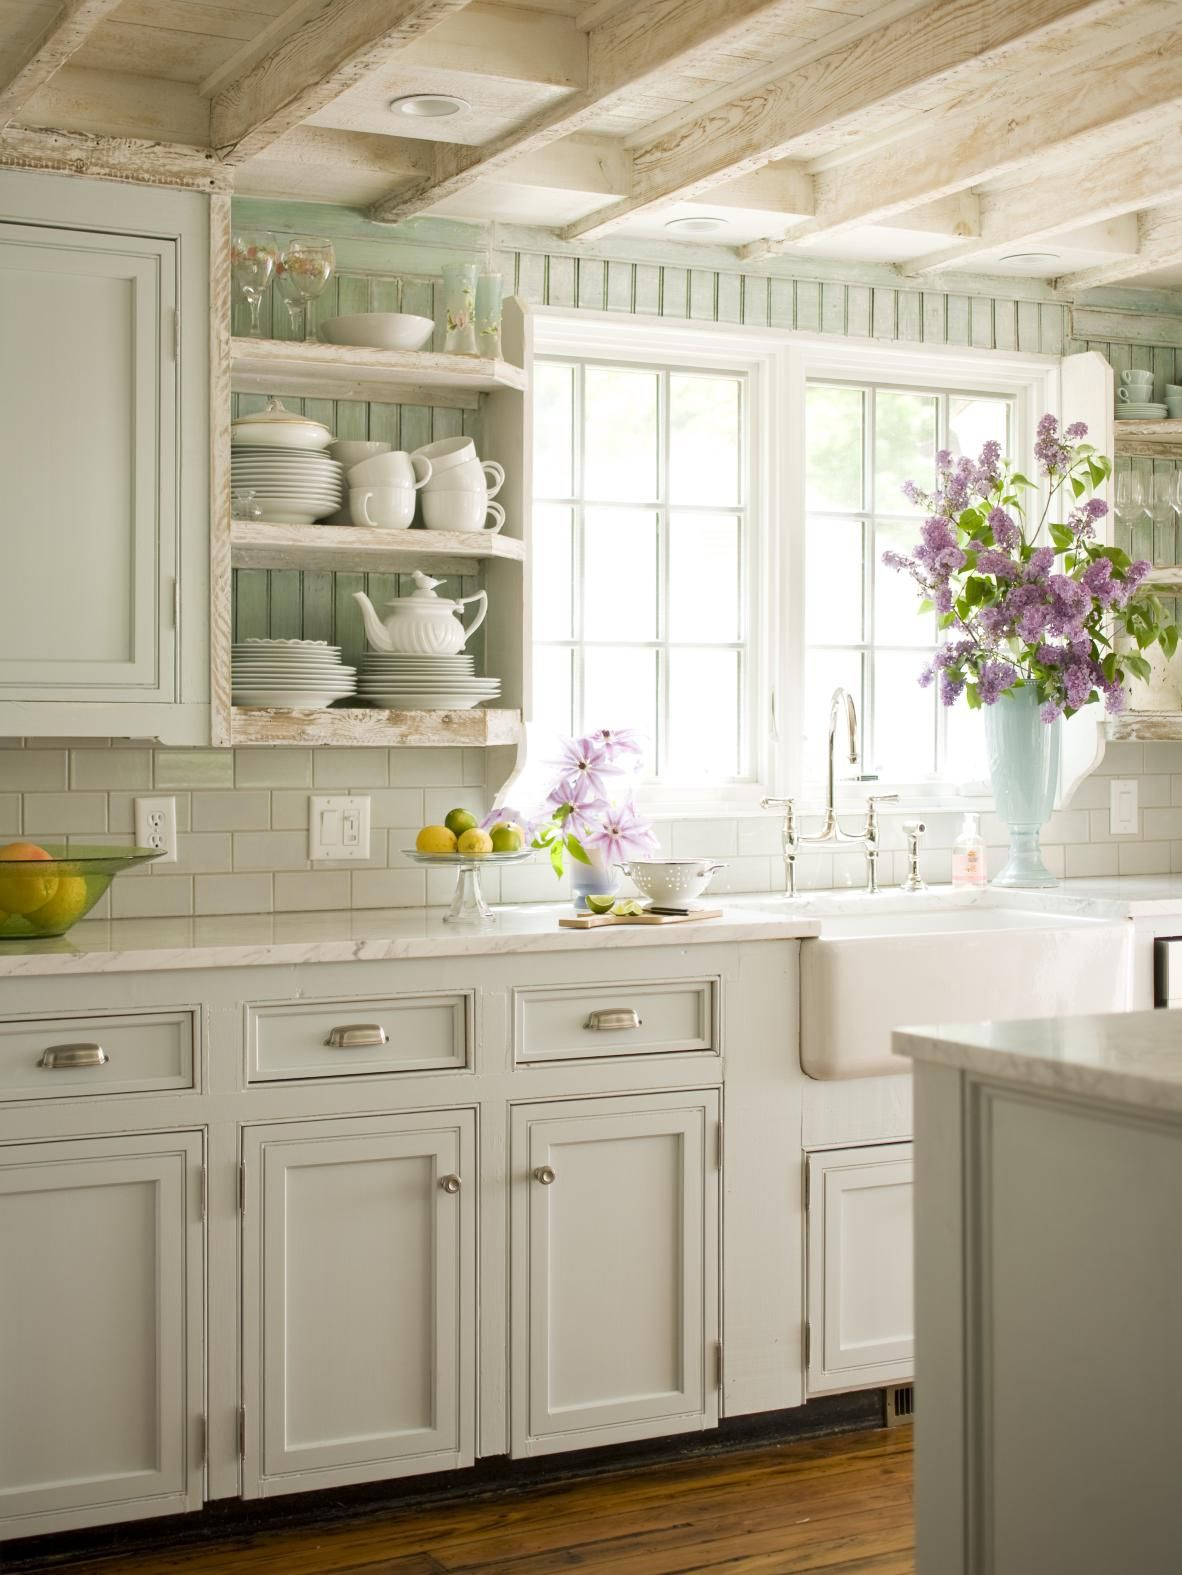 Decorate a Farmhouse Kitchen in 2019 | Cottage kitchen ...